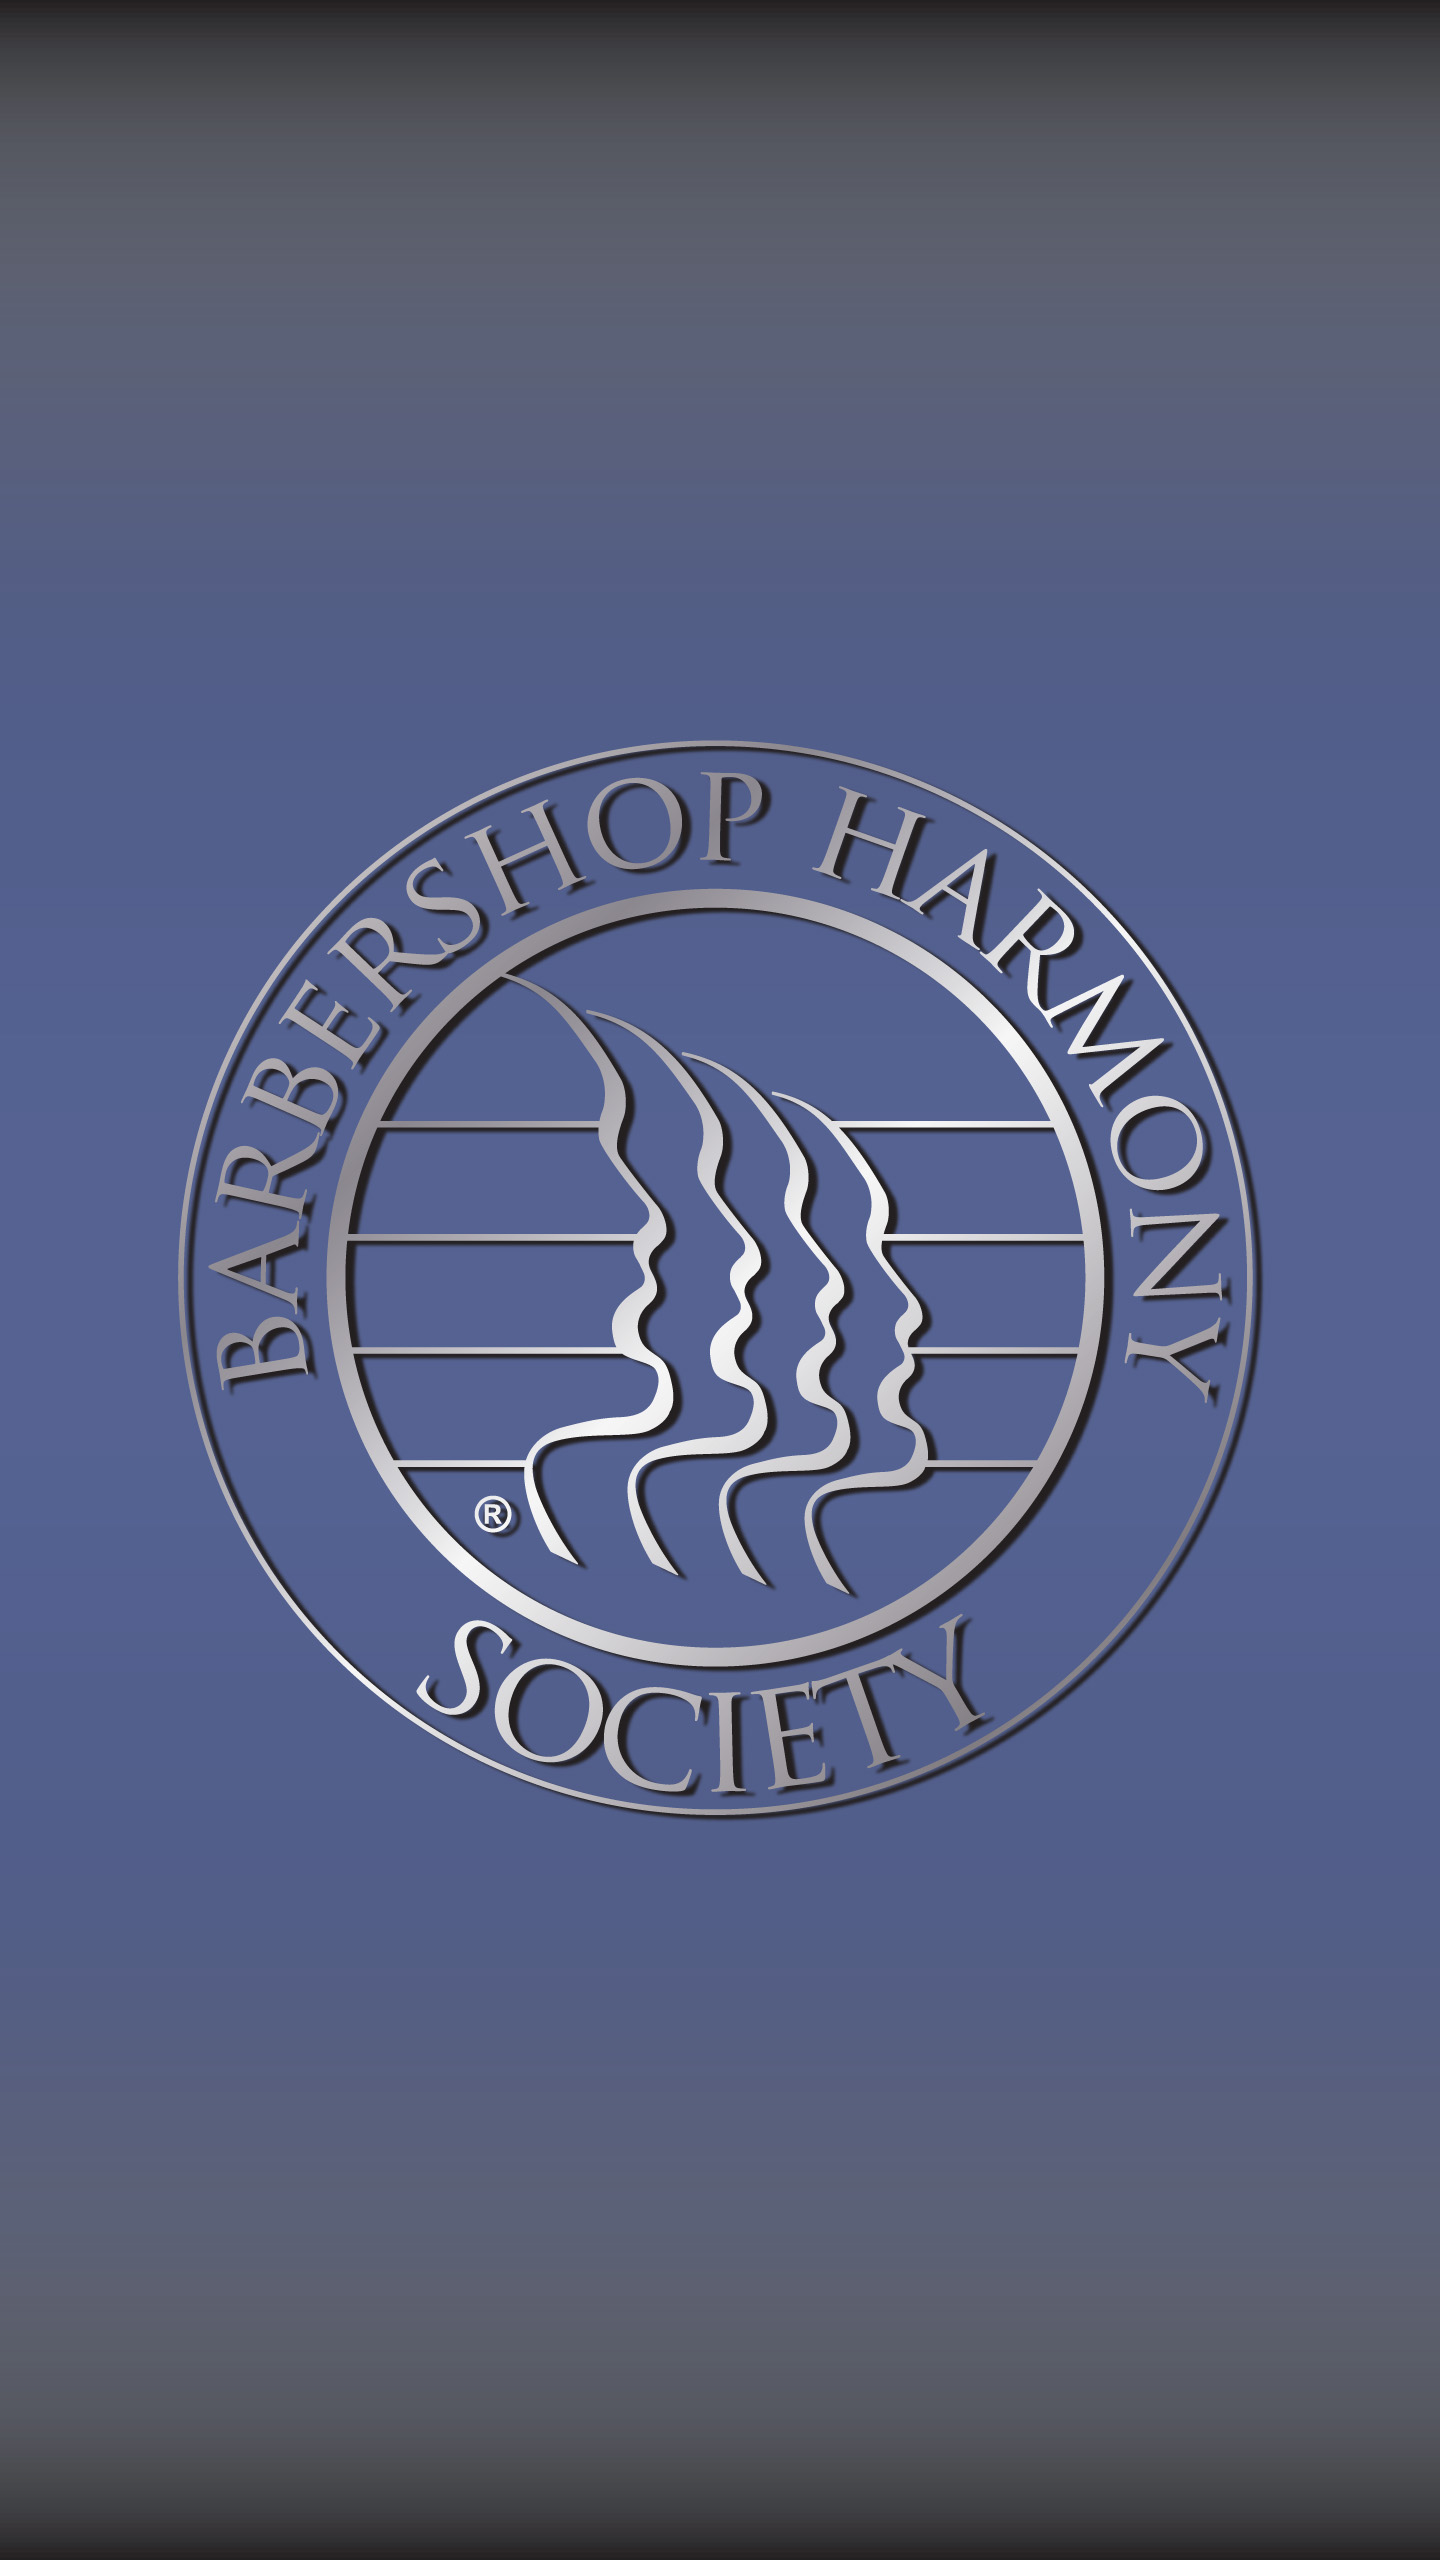 mobile device wallpapers barbershop harmony society